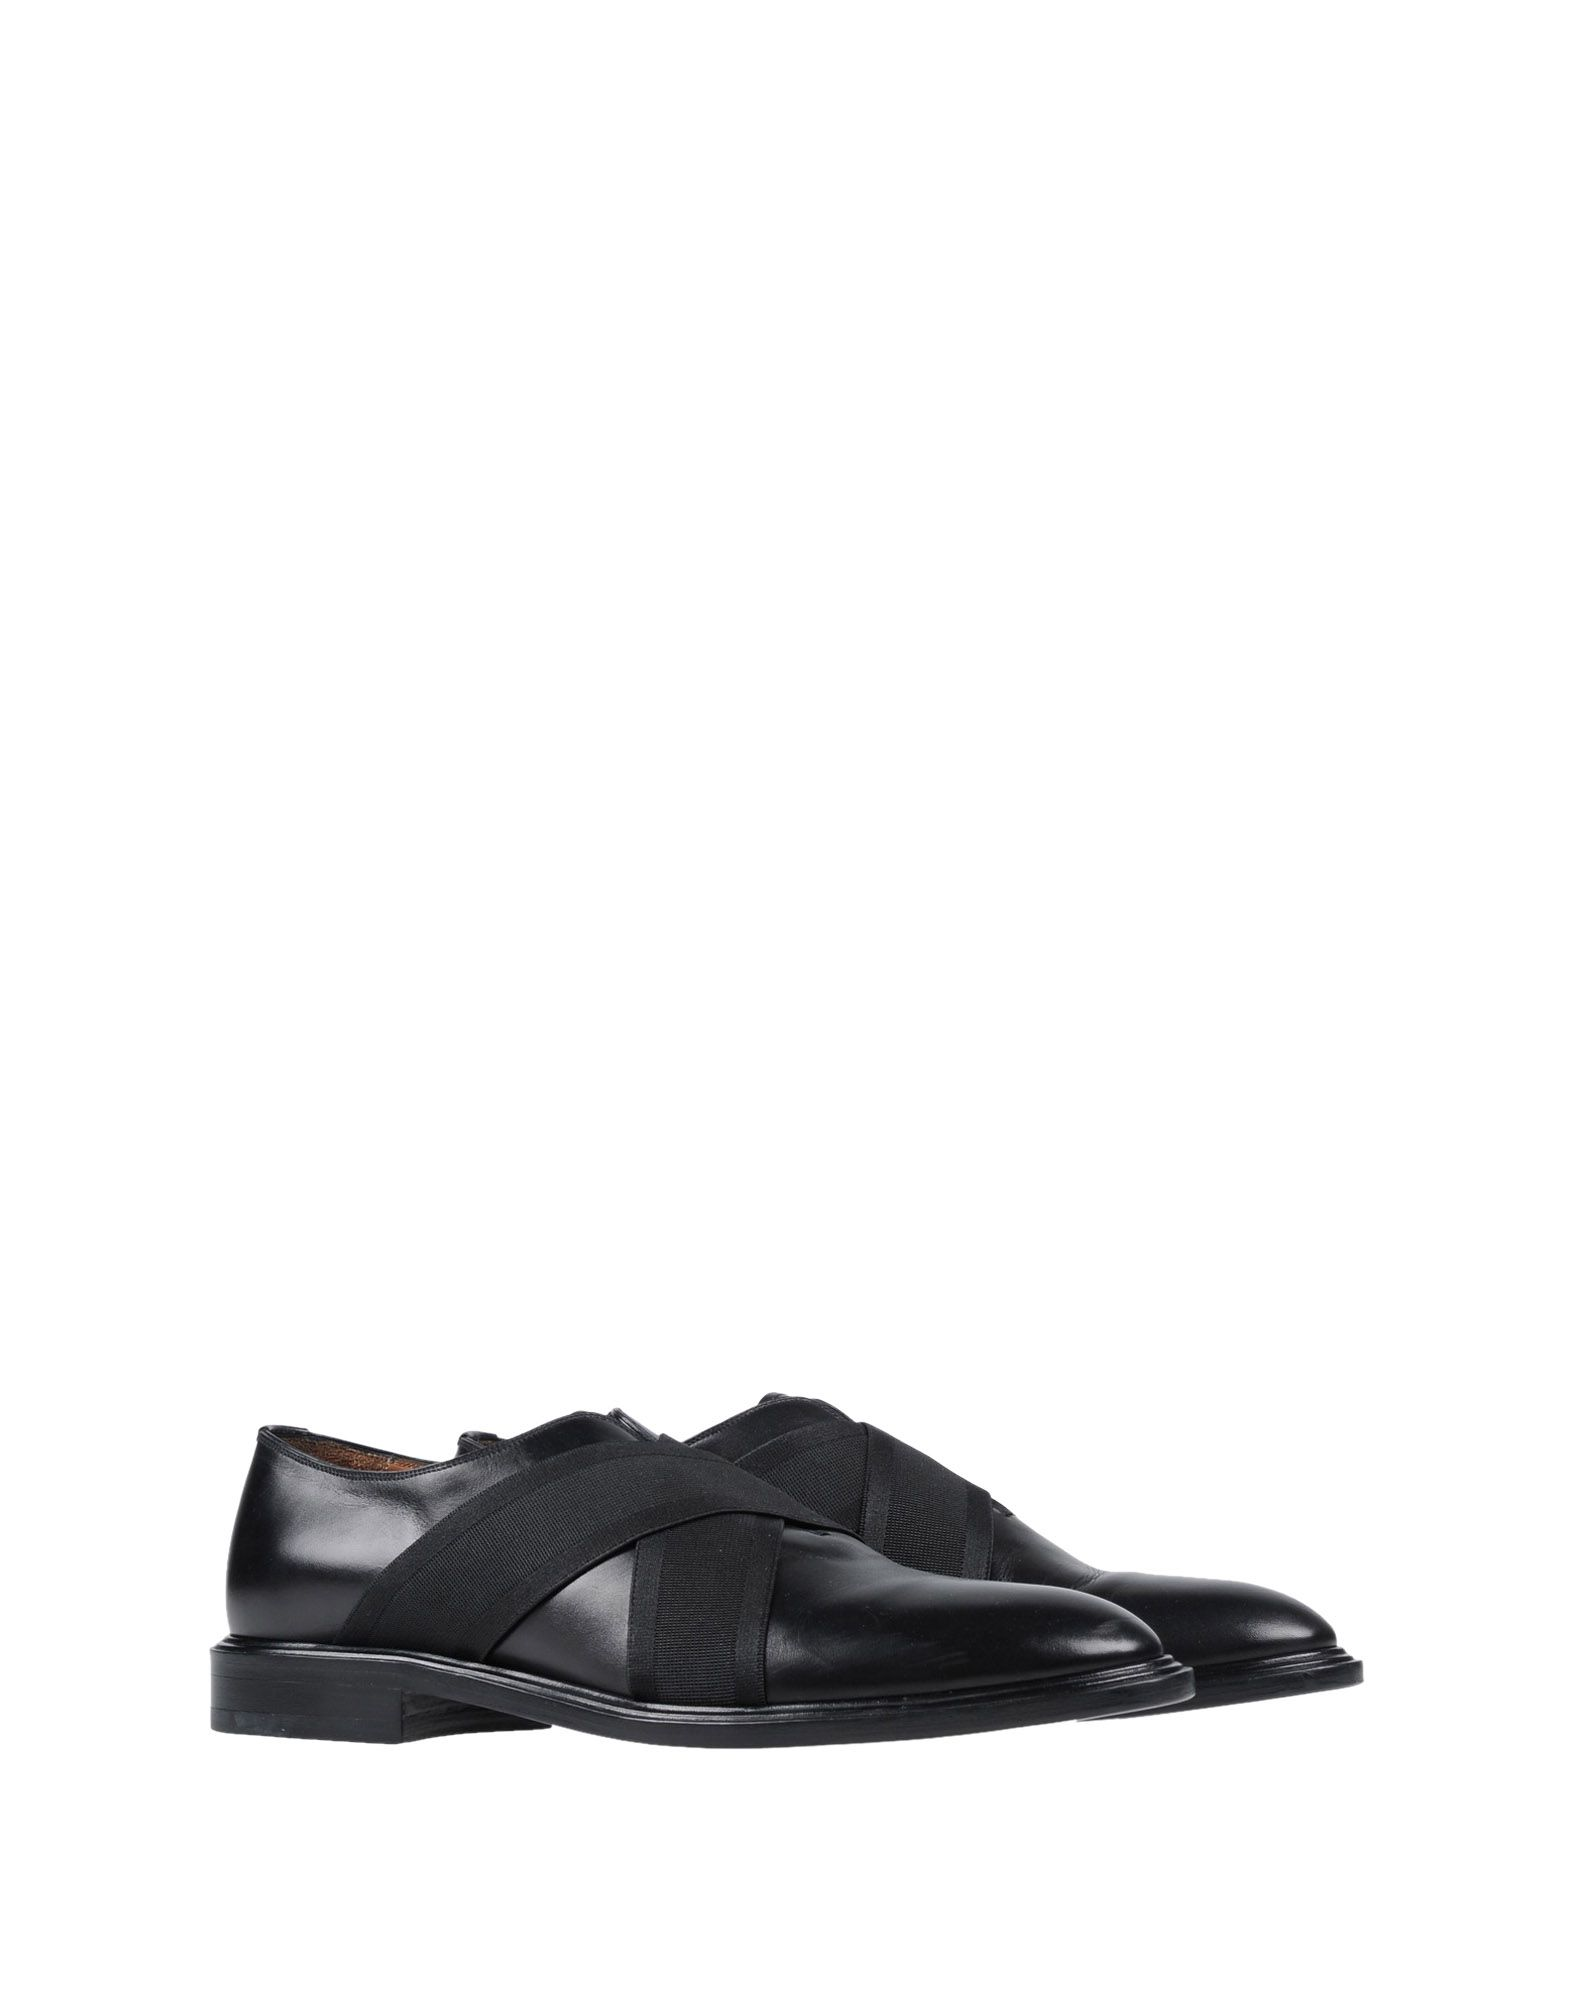 11478581MP Givenchy Schnürschuhe Herren  11478581MP  fdd580